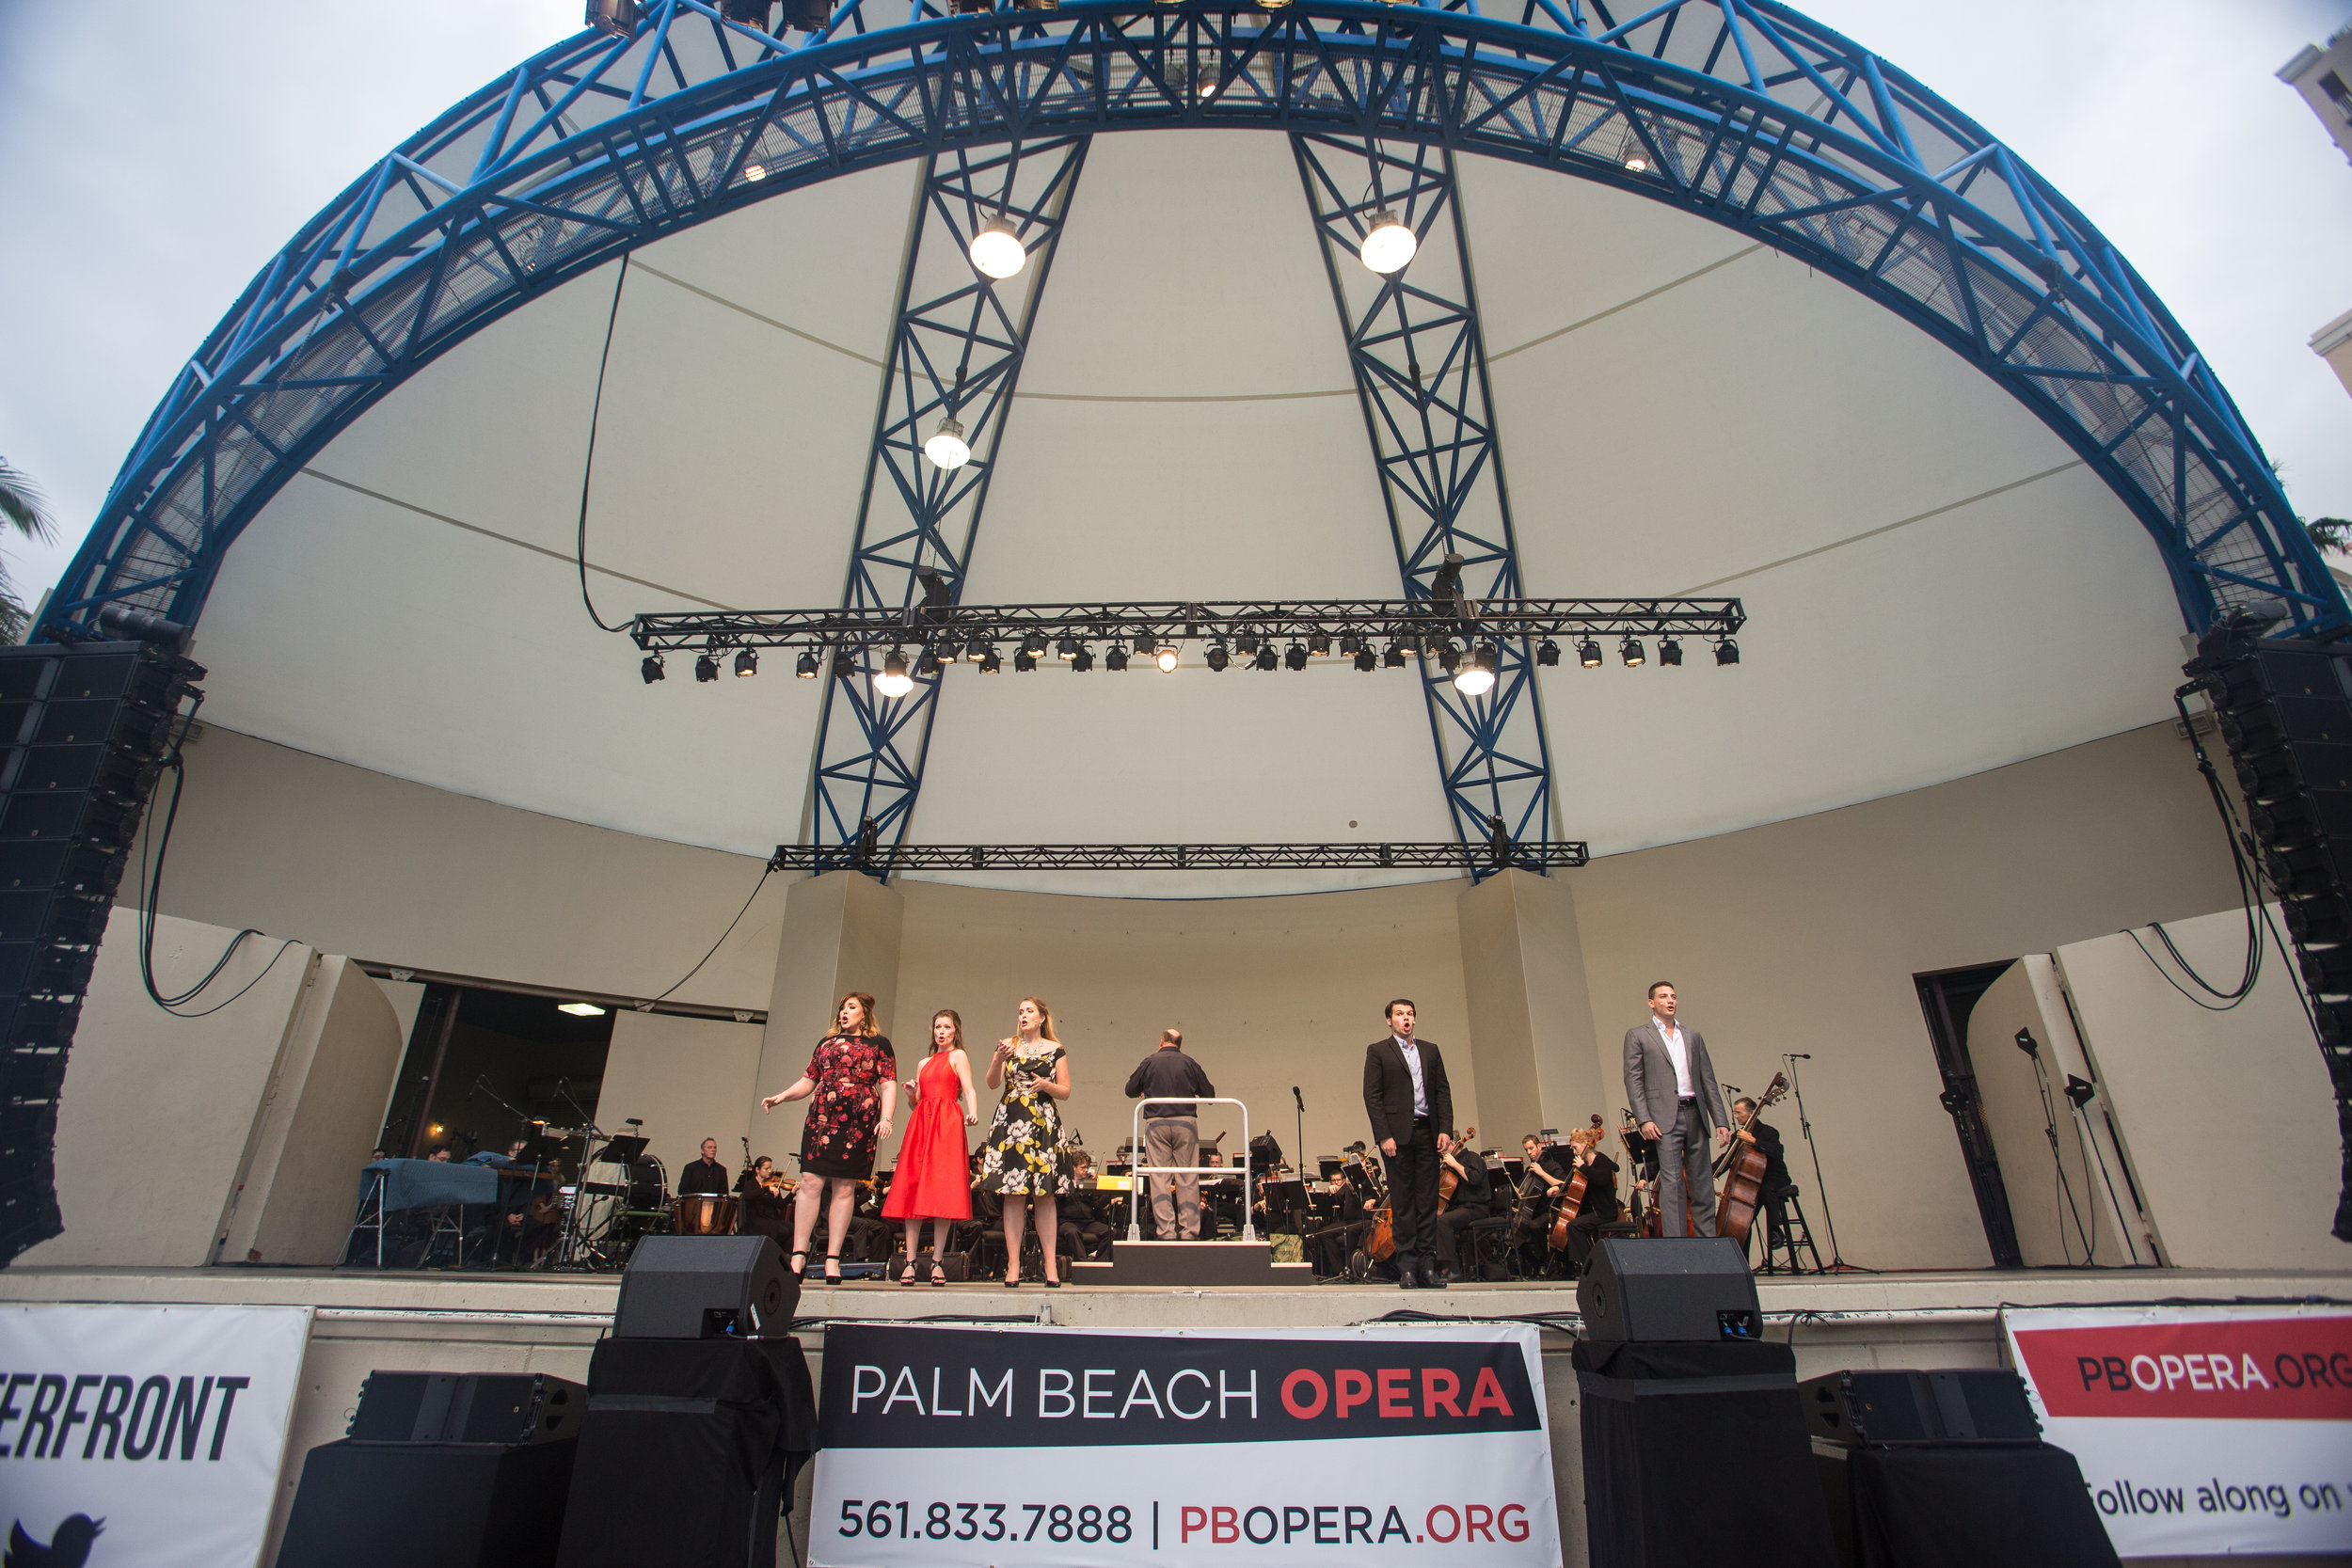 PBO: Opera on the Waterfront 2016